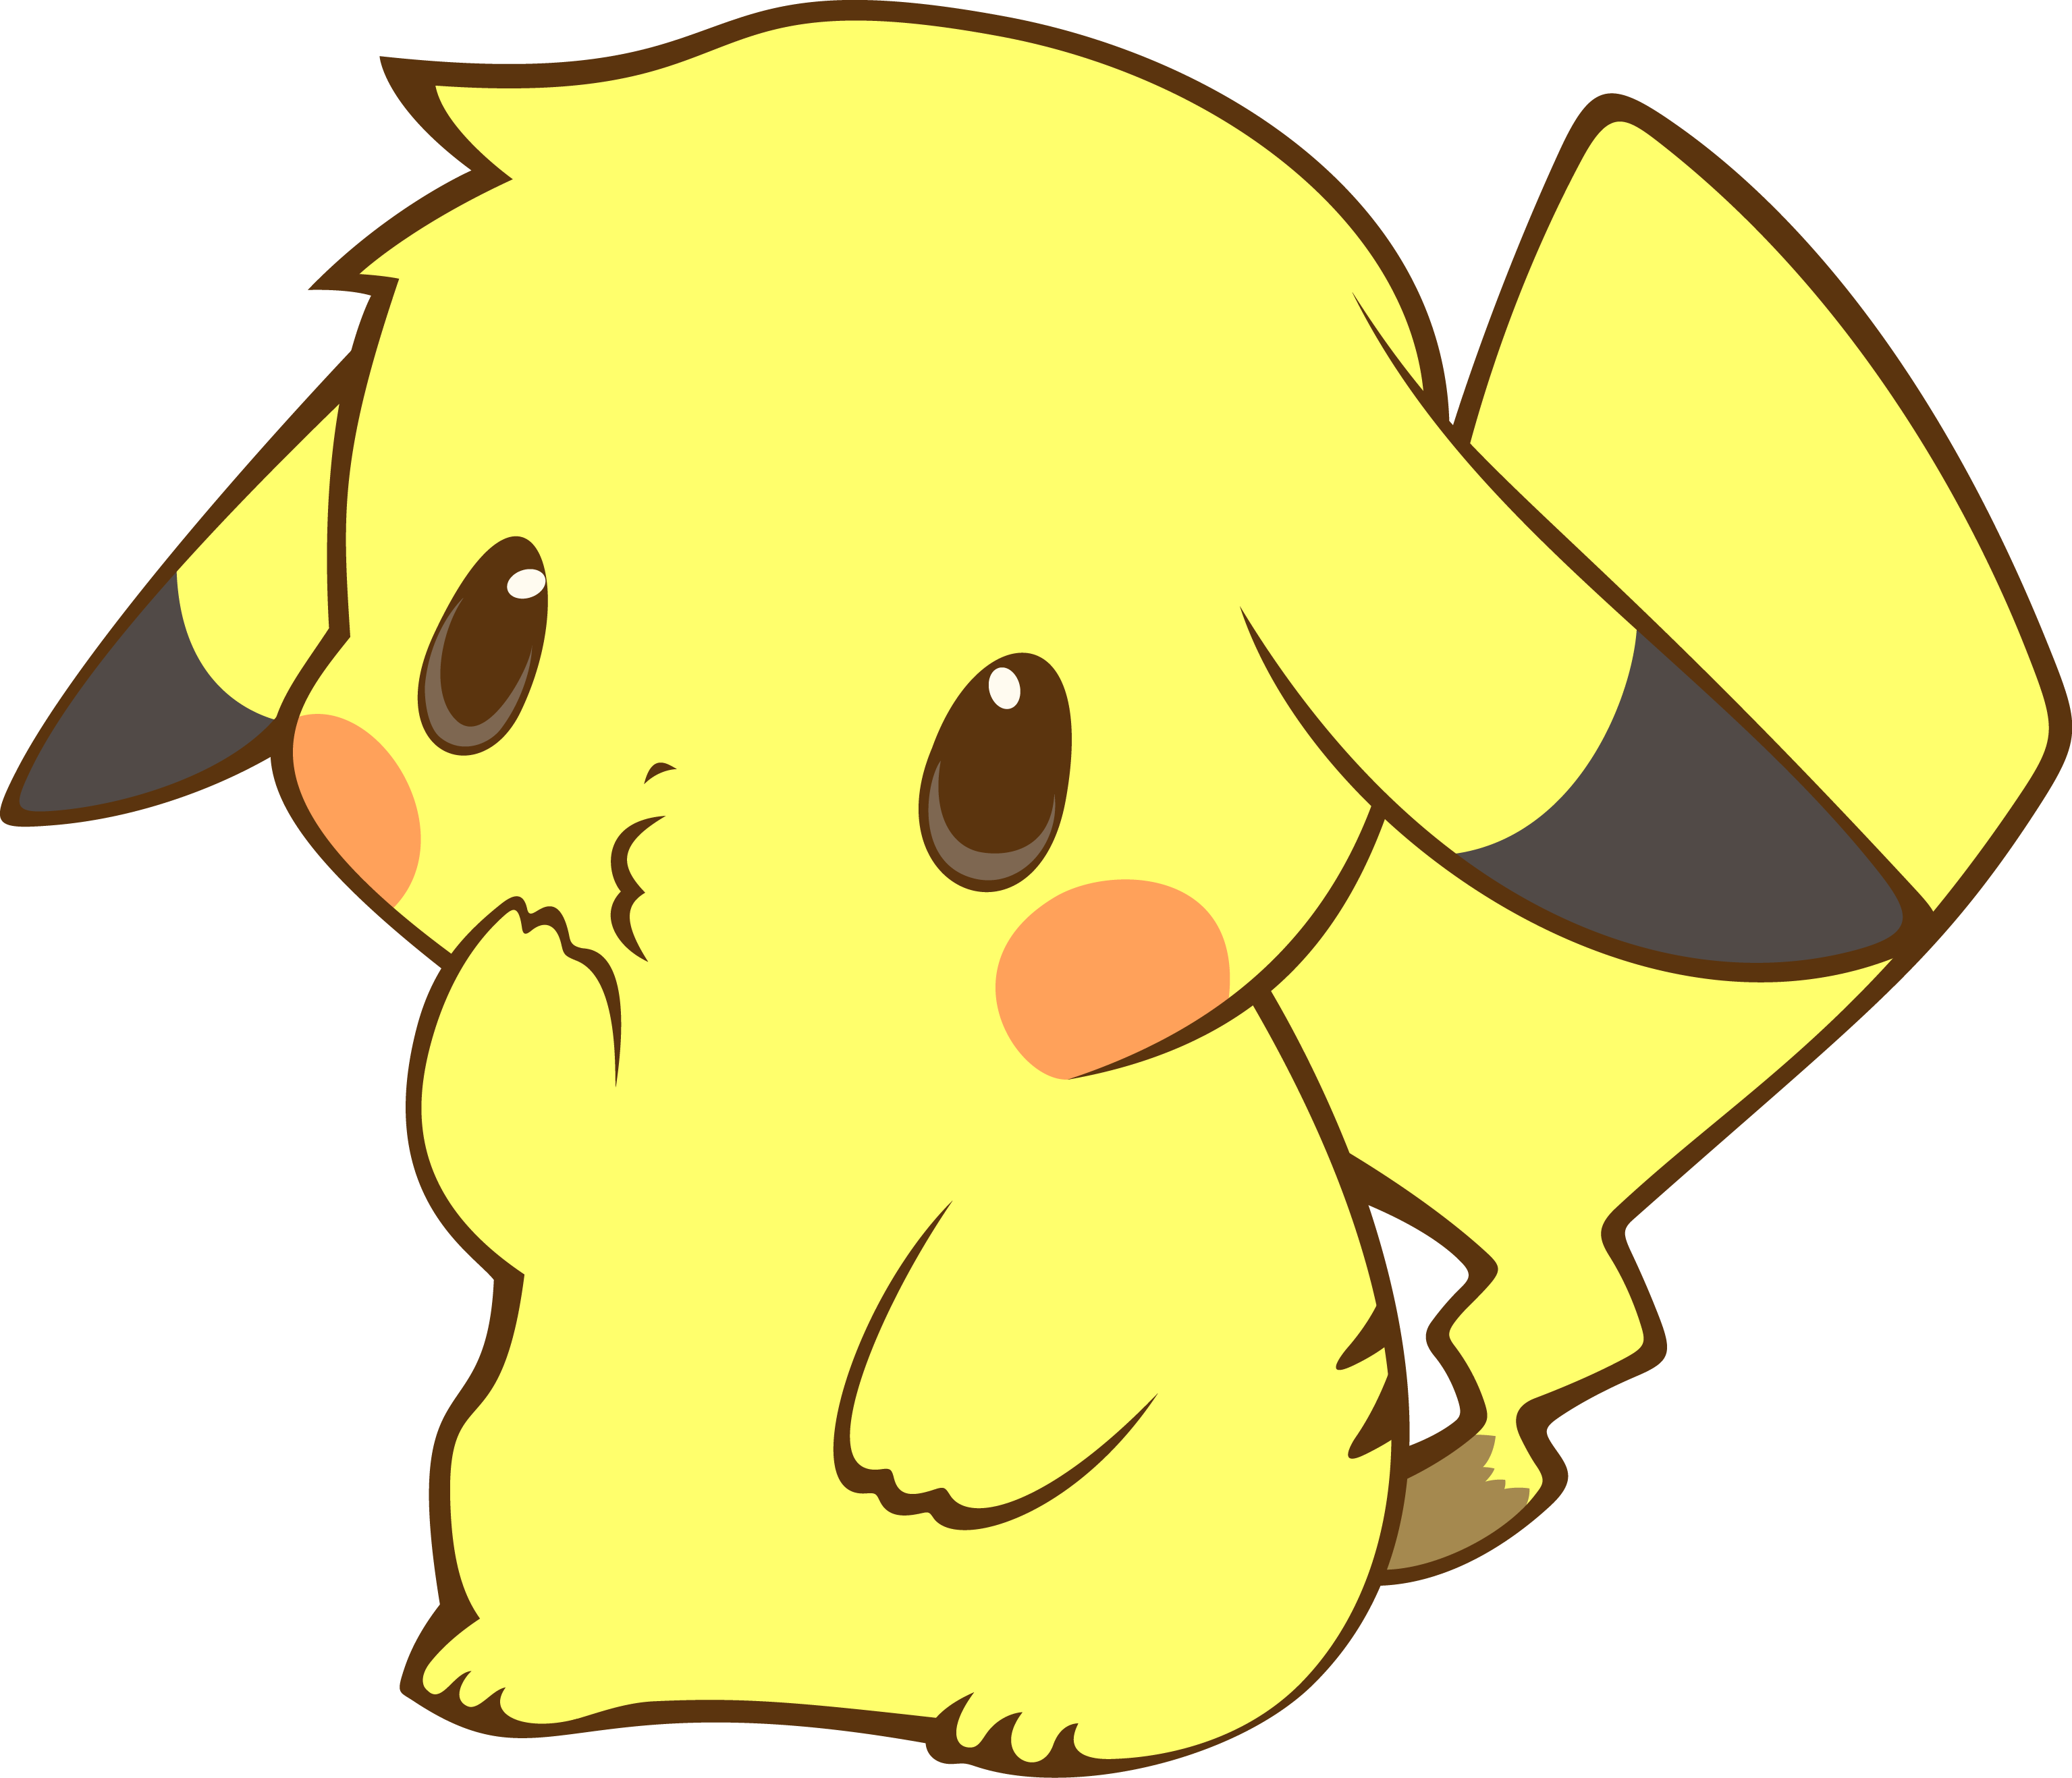 Cute Chibi Pokemon Wallpapers Top Free Cute Chibi Pokemon Backgrounds Wallpaperaccess